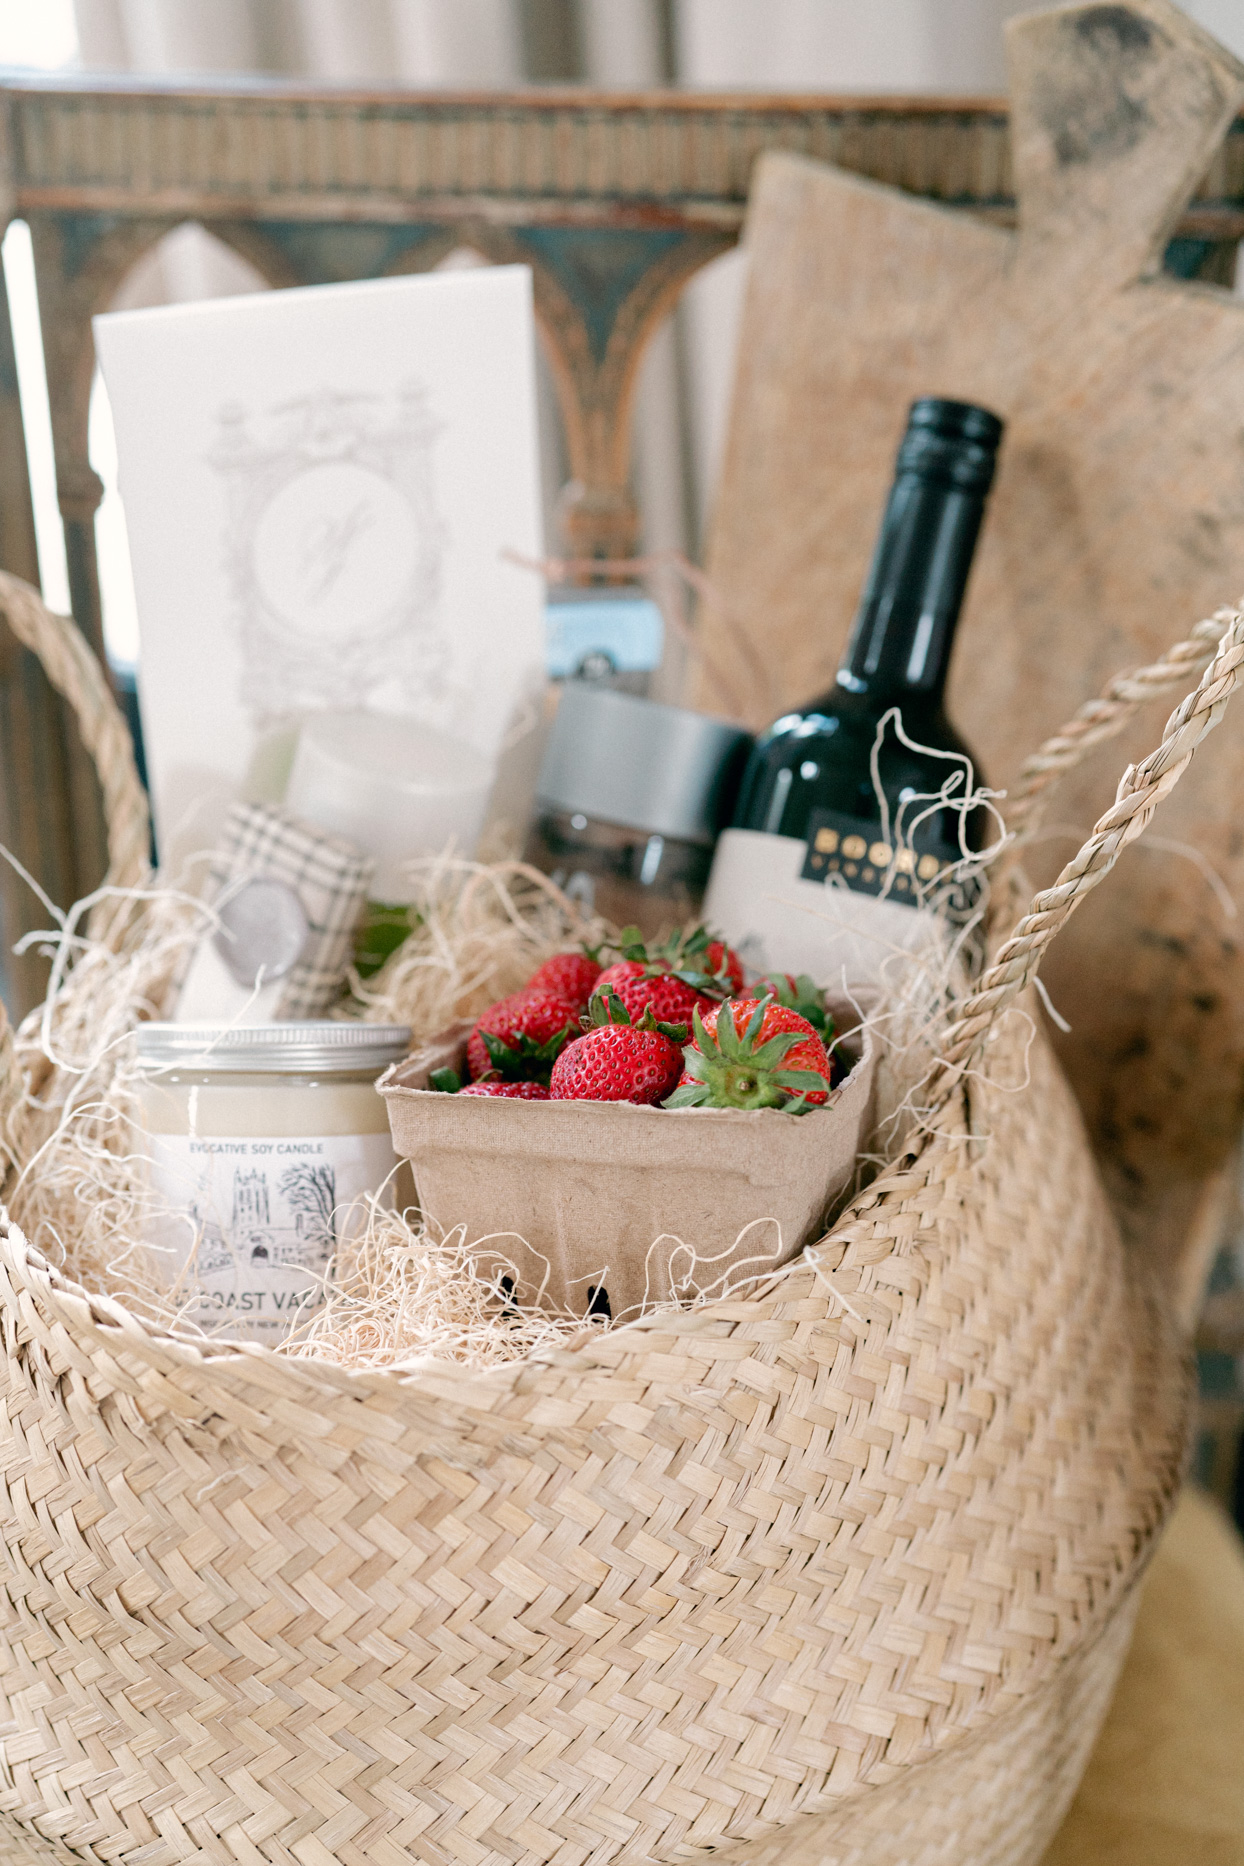 woven welcome baskets filled with various east coast themed treats